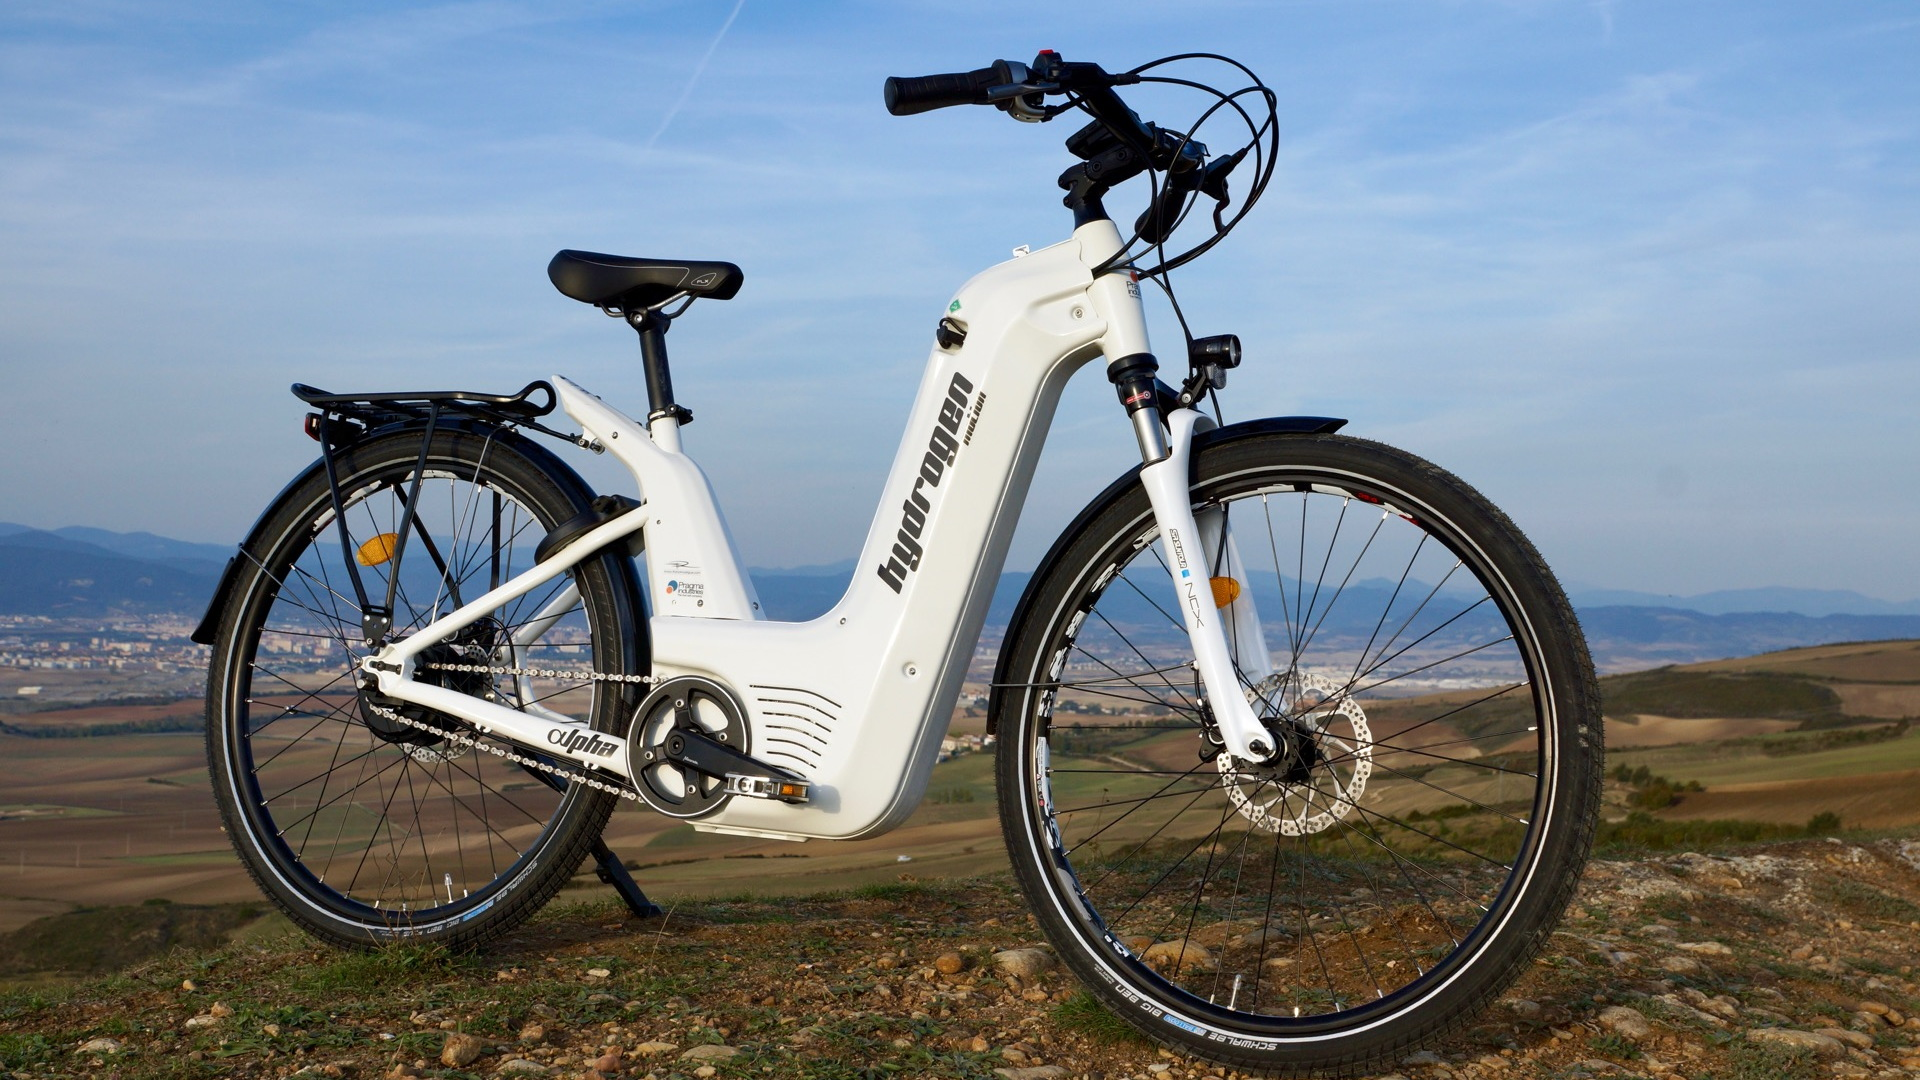 Alpha2.0 hydrogen fuel-cell e-bike